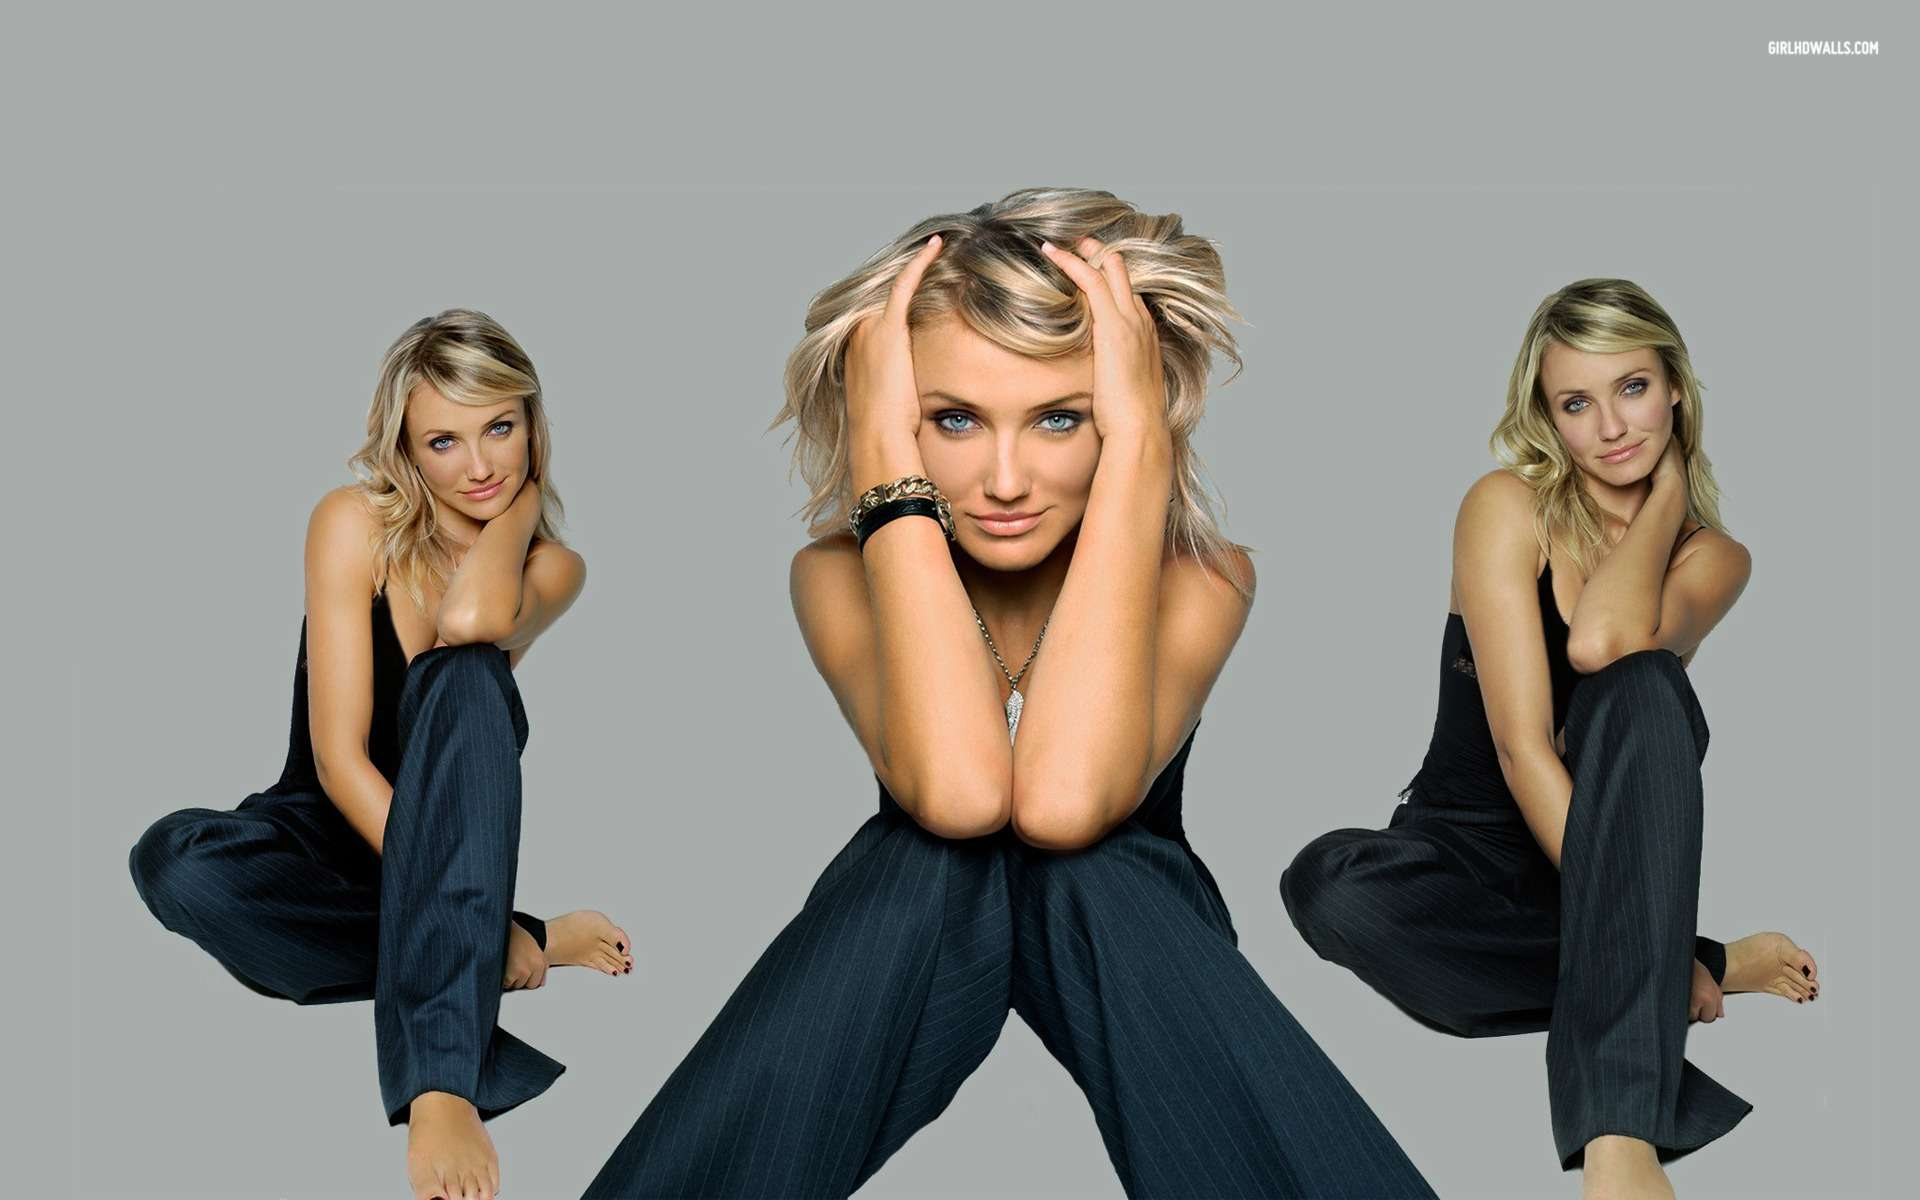 Cameron Diaz 13 Wallpapers Hd Wallpapers 1920x1200